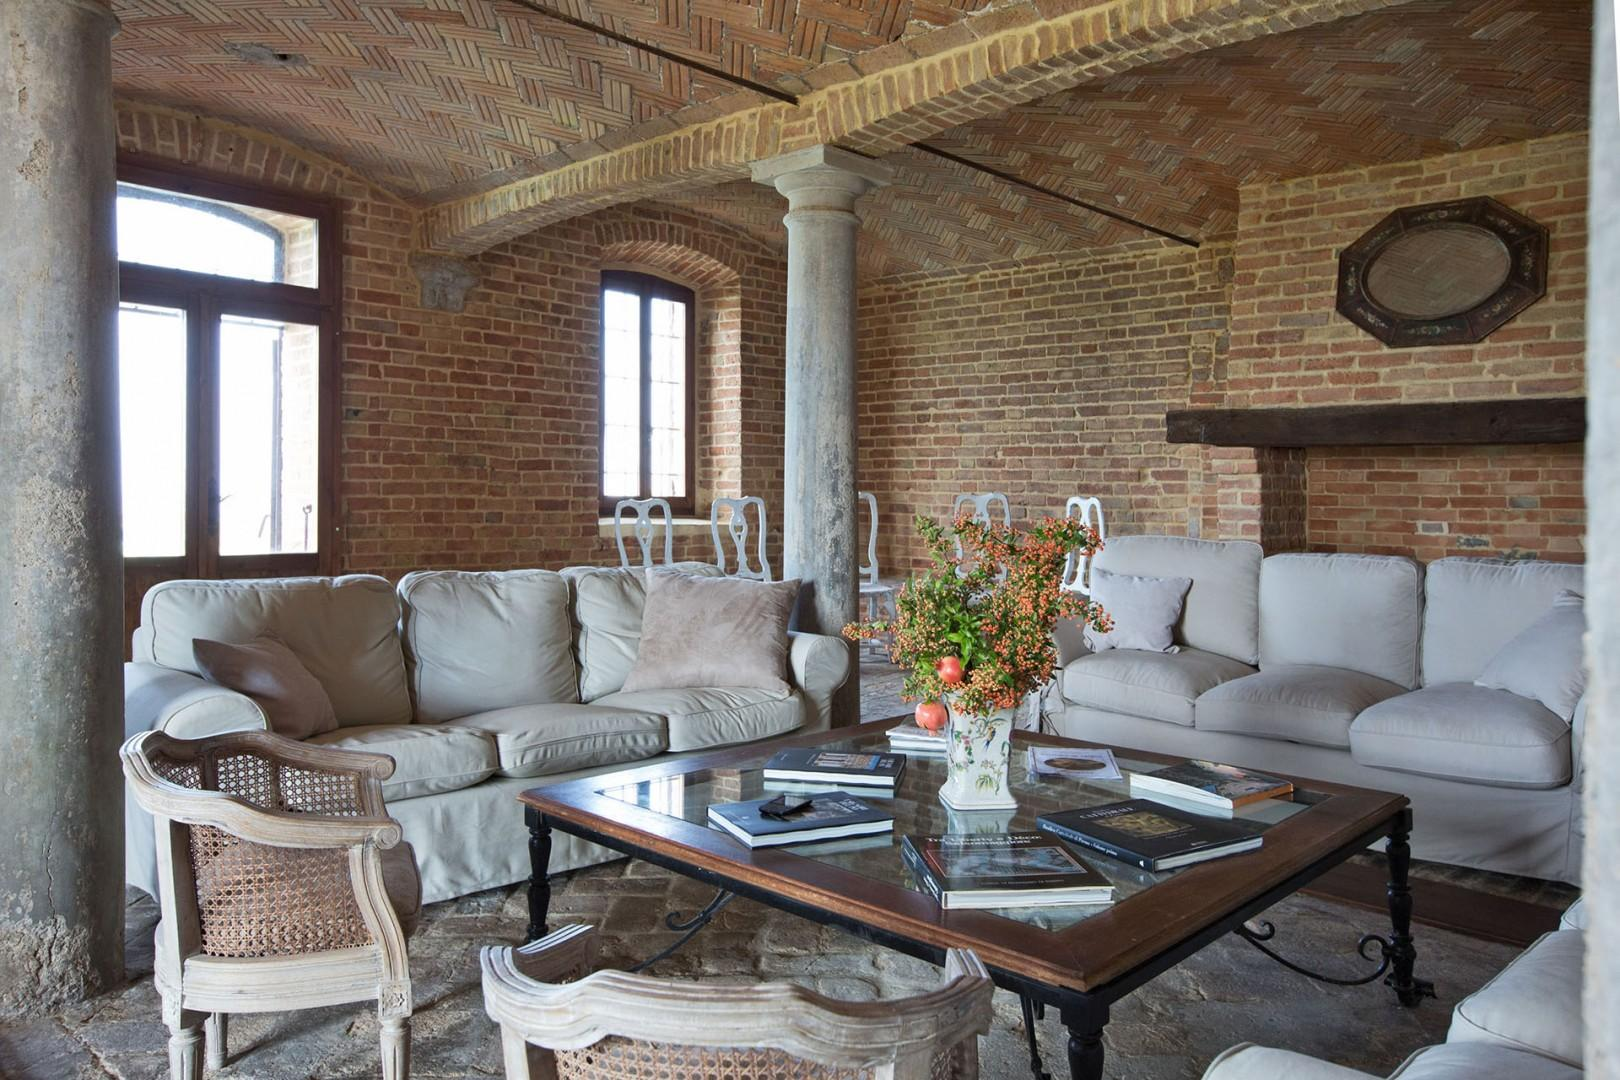 The spacious living room with brick arches and stone columns and lots of seating